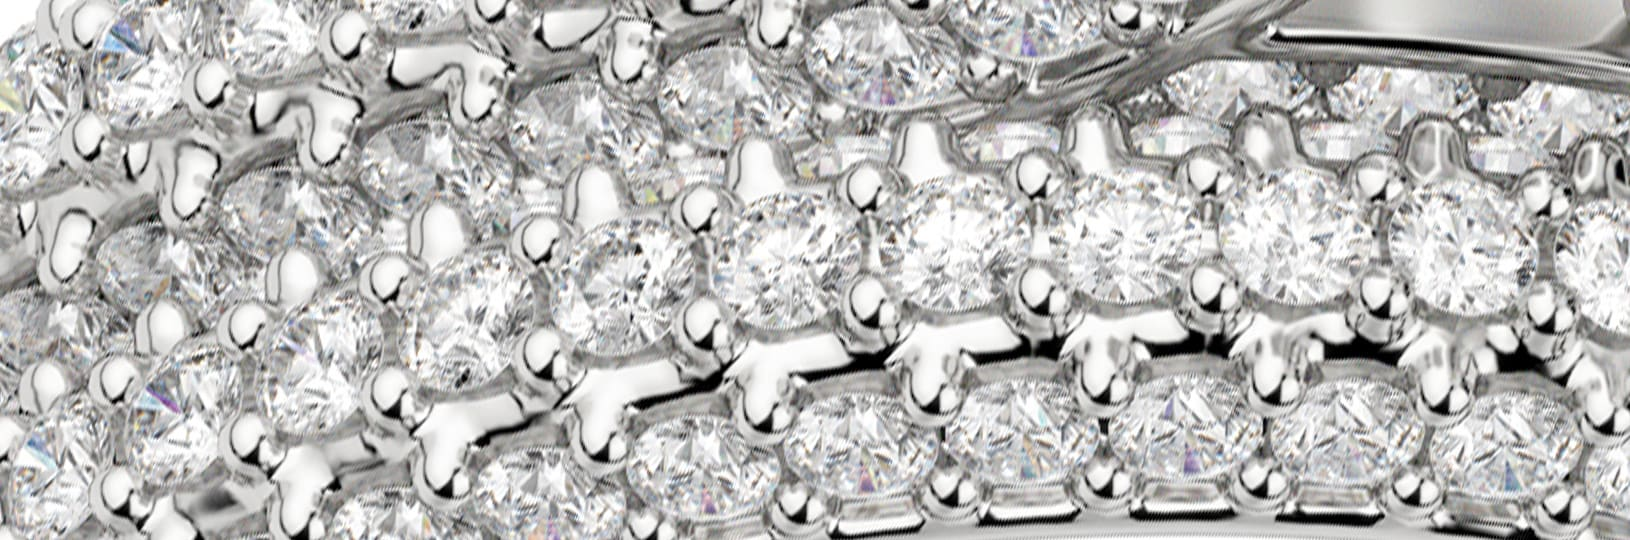 Zoomed in image of pavé stones